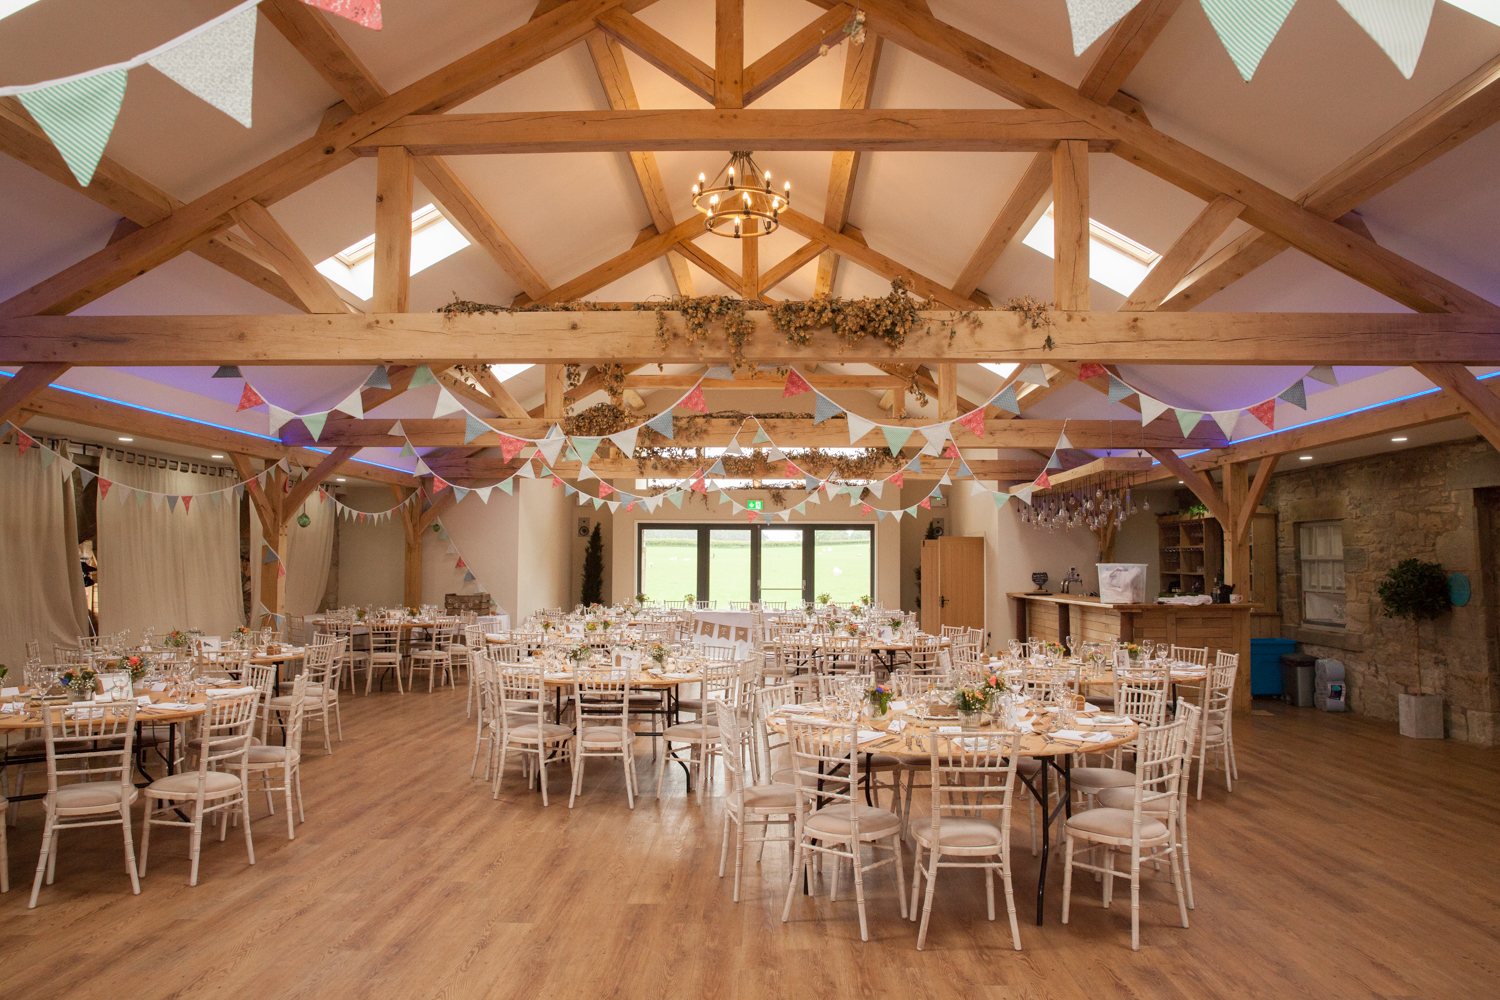 WEDDING_PICTORIAL_DOXFORD_BARNS_ALNWICK_BERWICK_SEASIDE_BUNTING_FARM-0071.jpg